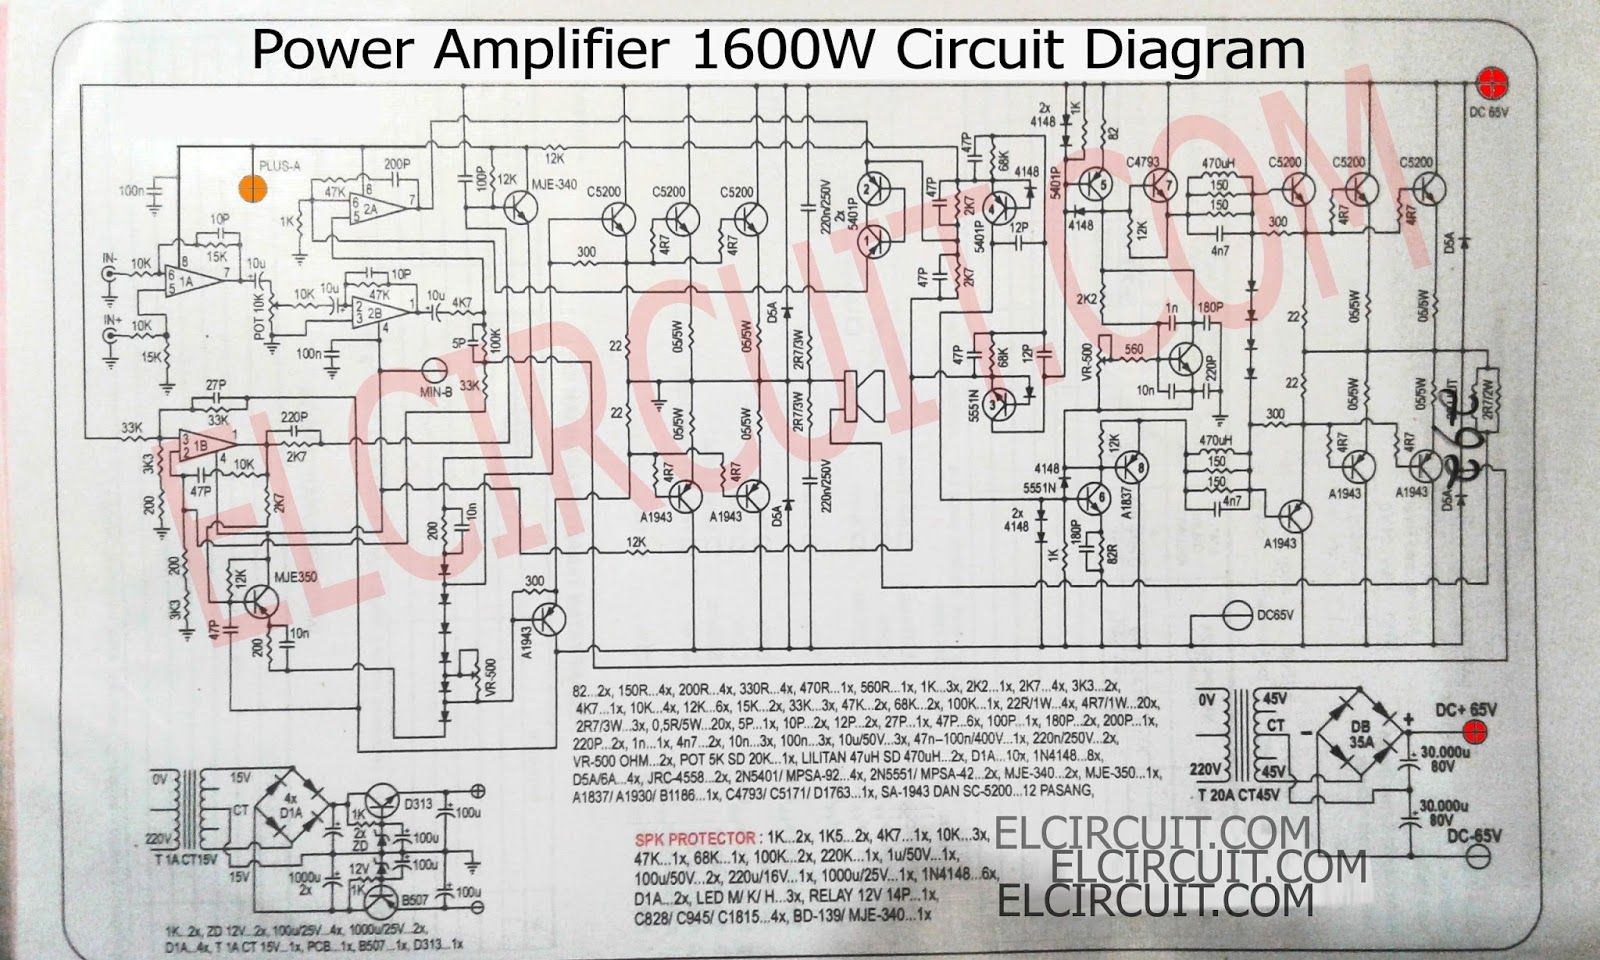 medium resolution of this power amplifier circuit is a 1600w mono circuit that uses transistors as an amplifier